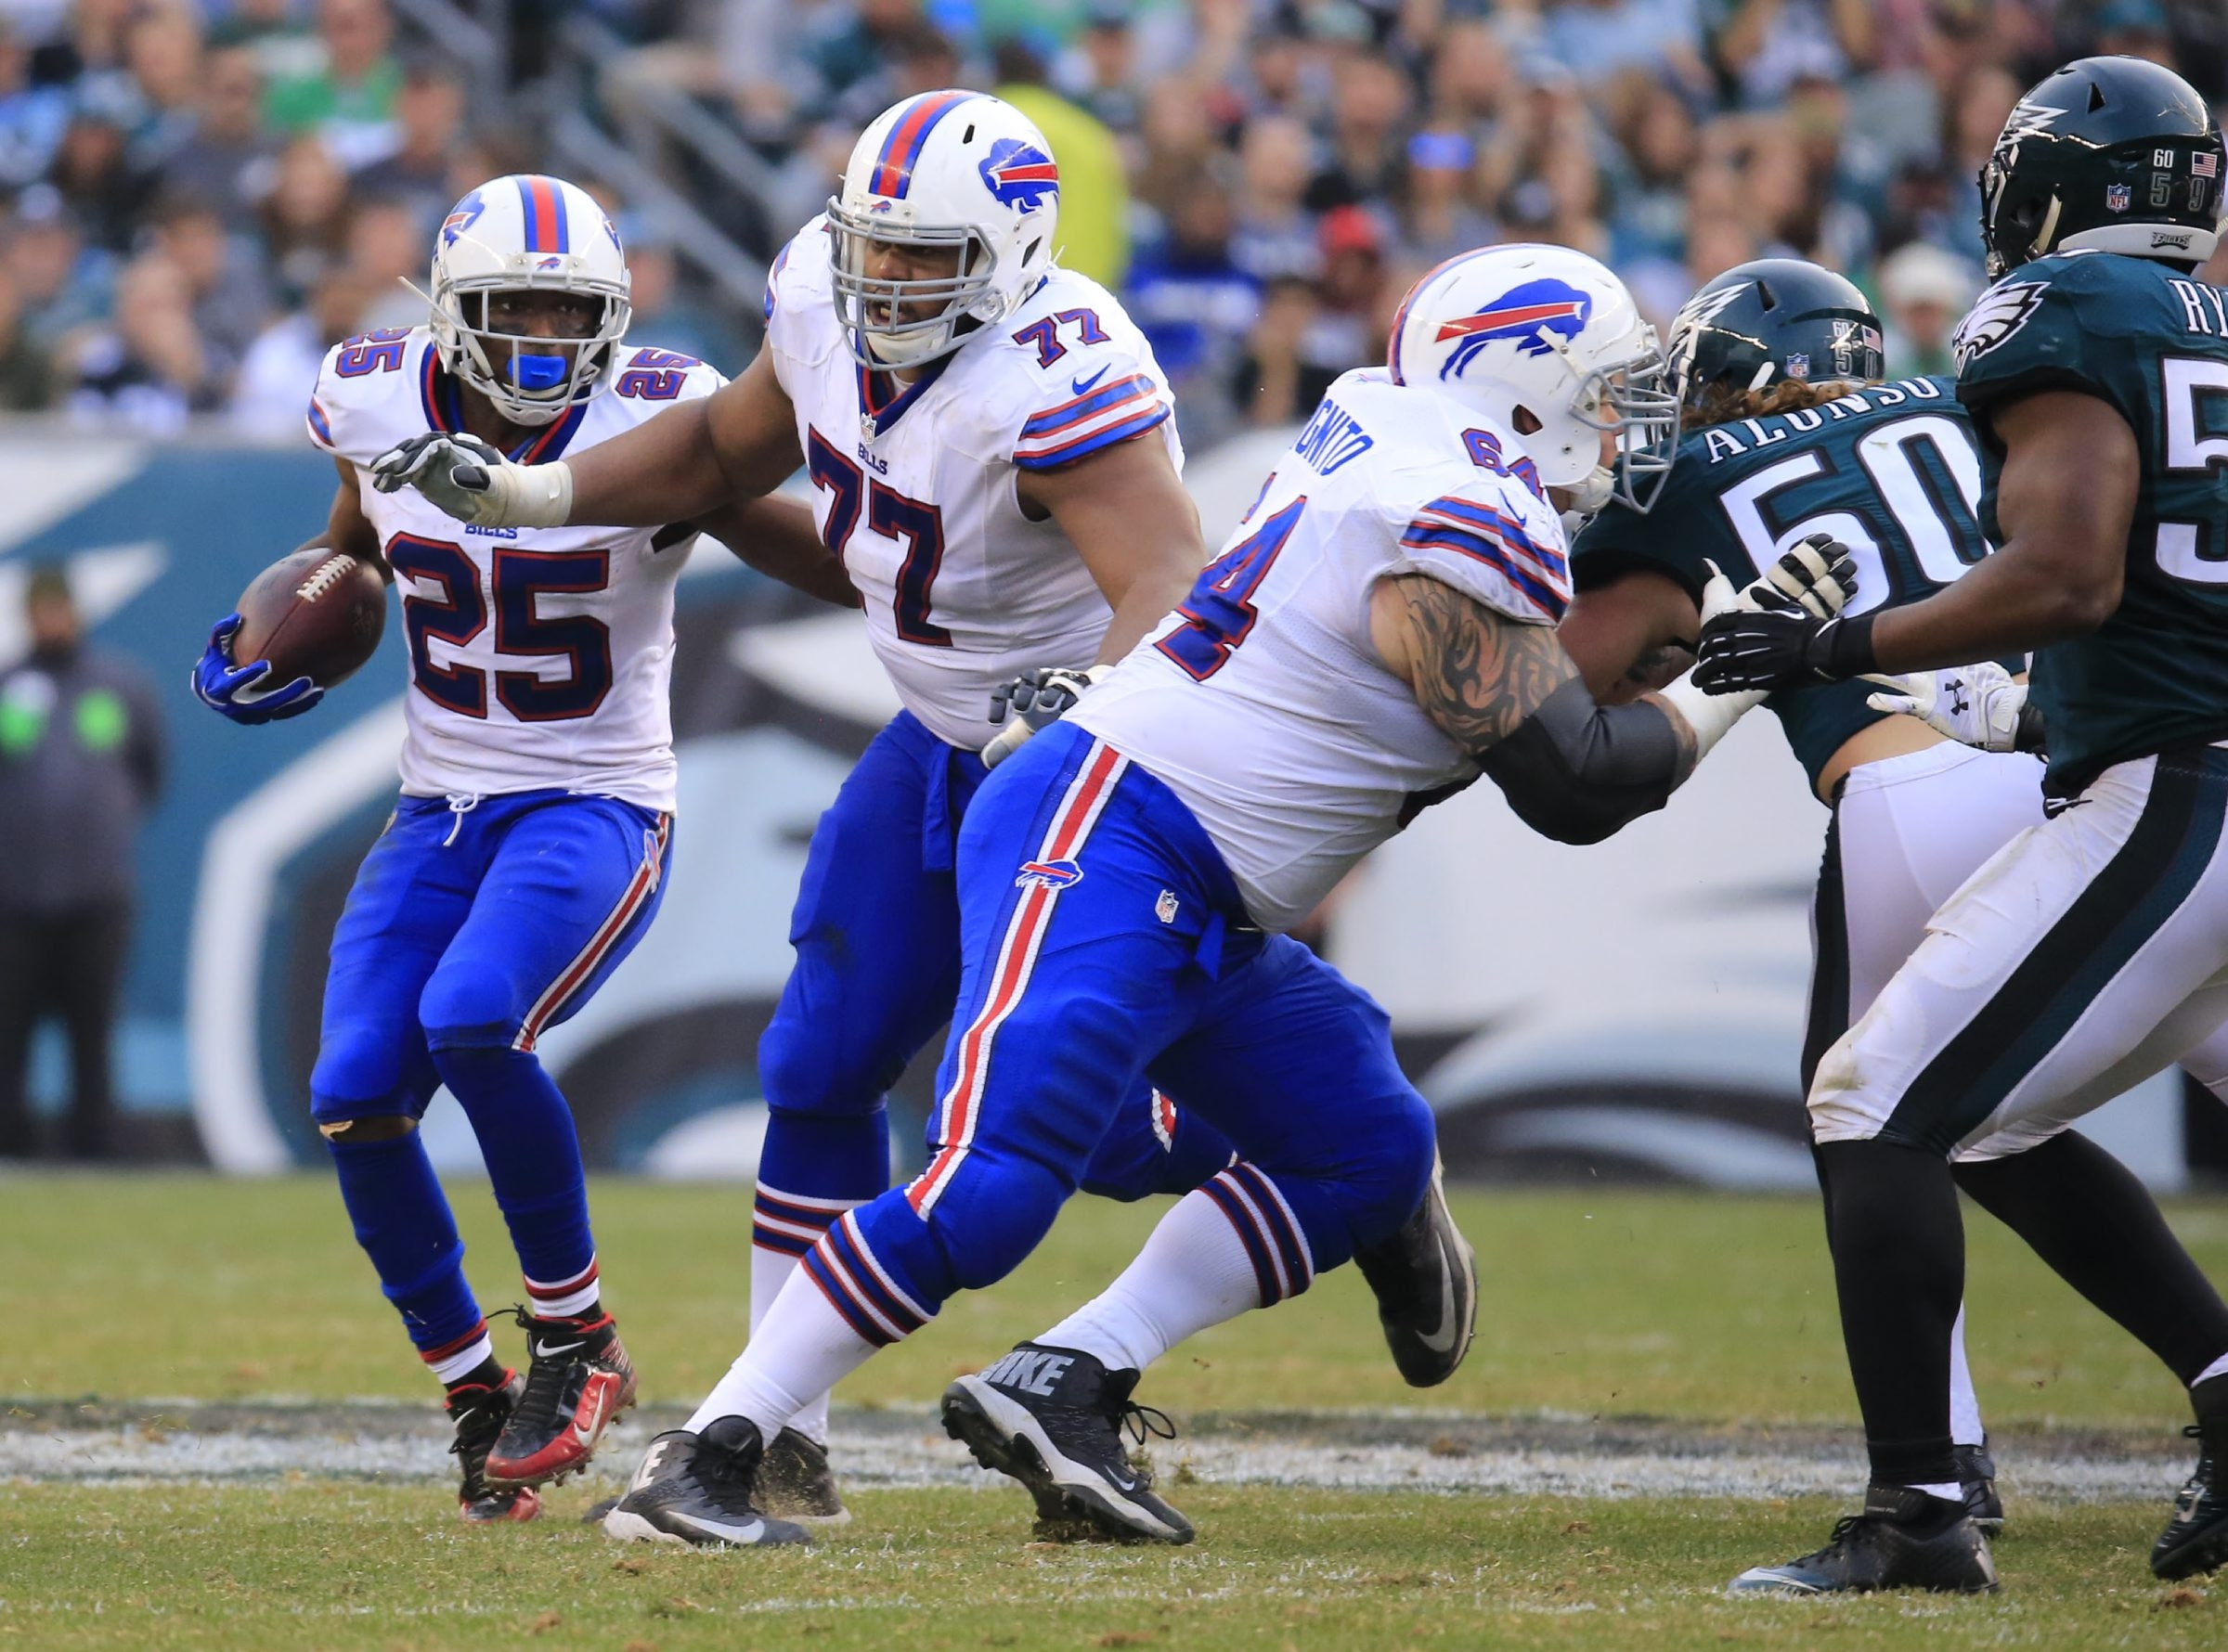 Despite missing four games with injuries, LeSean McCoy still led the Bills in rushing with 895 yards and was the team's only outright selection to the Pro Bowl.